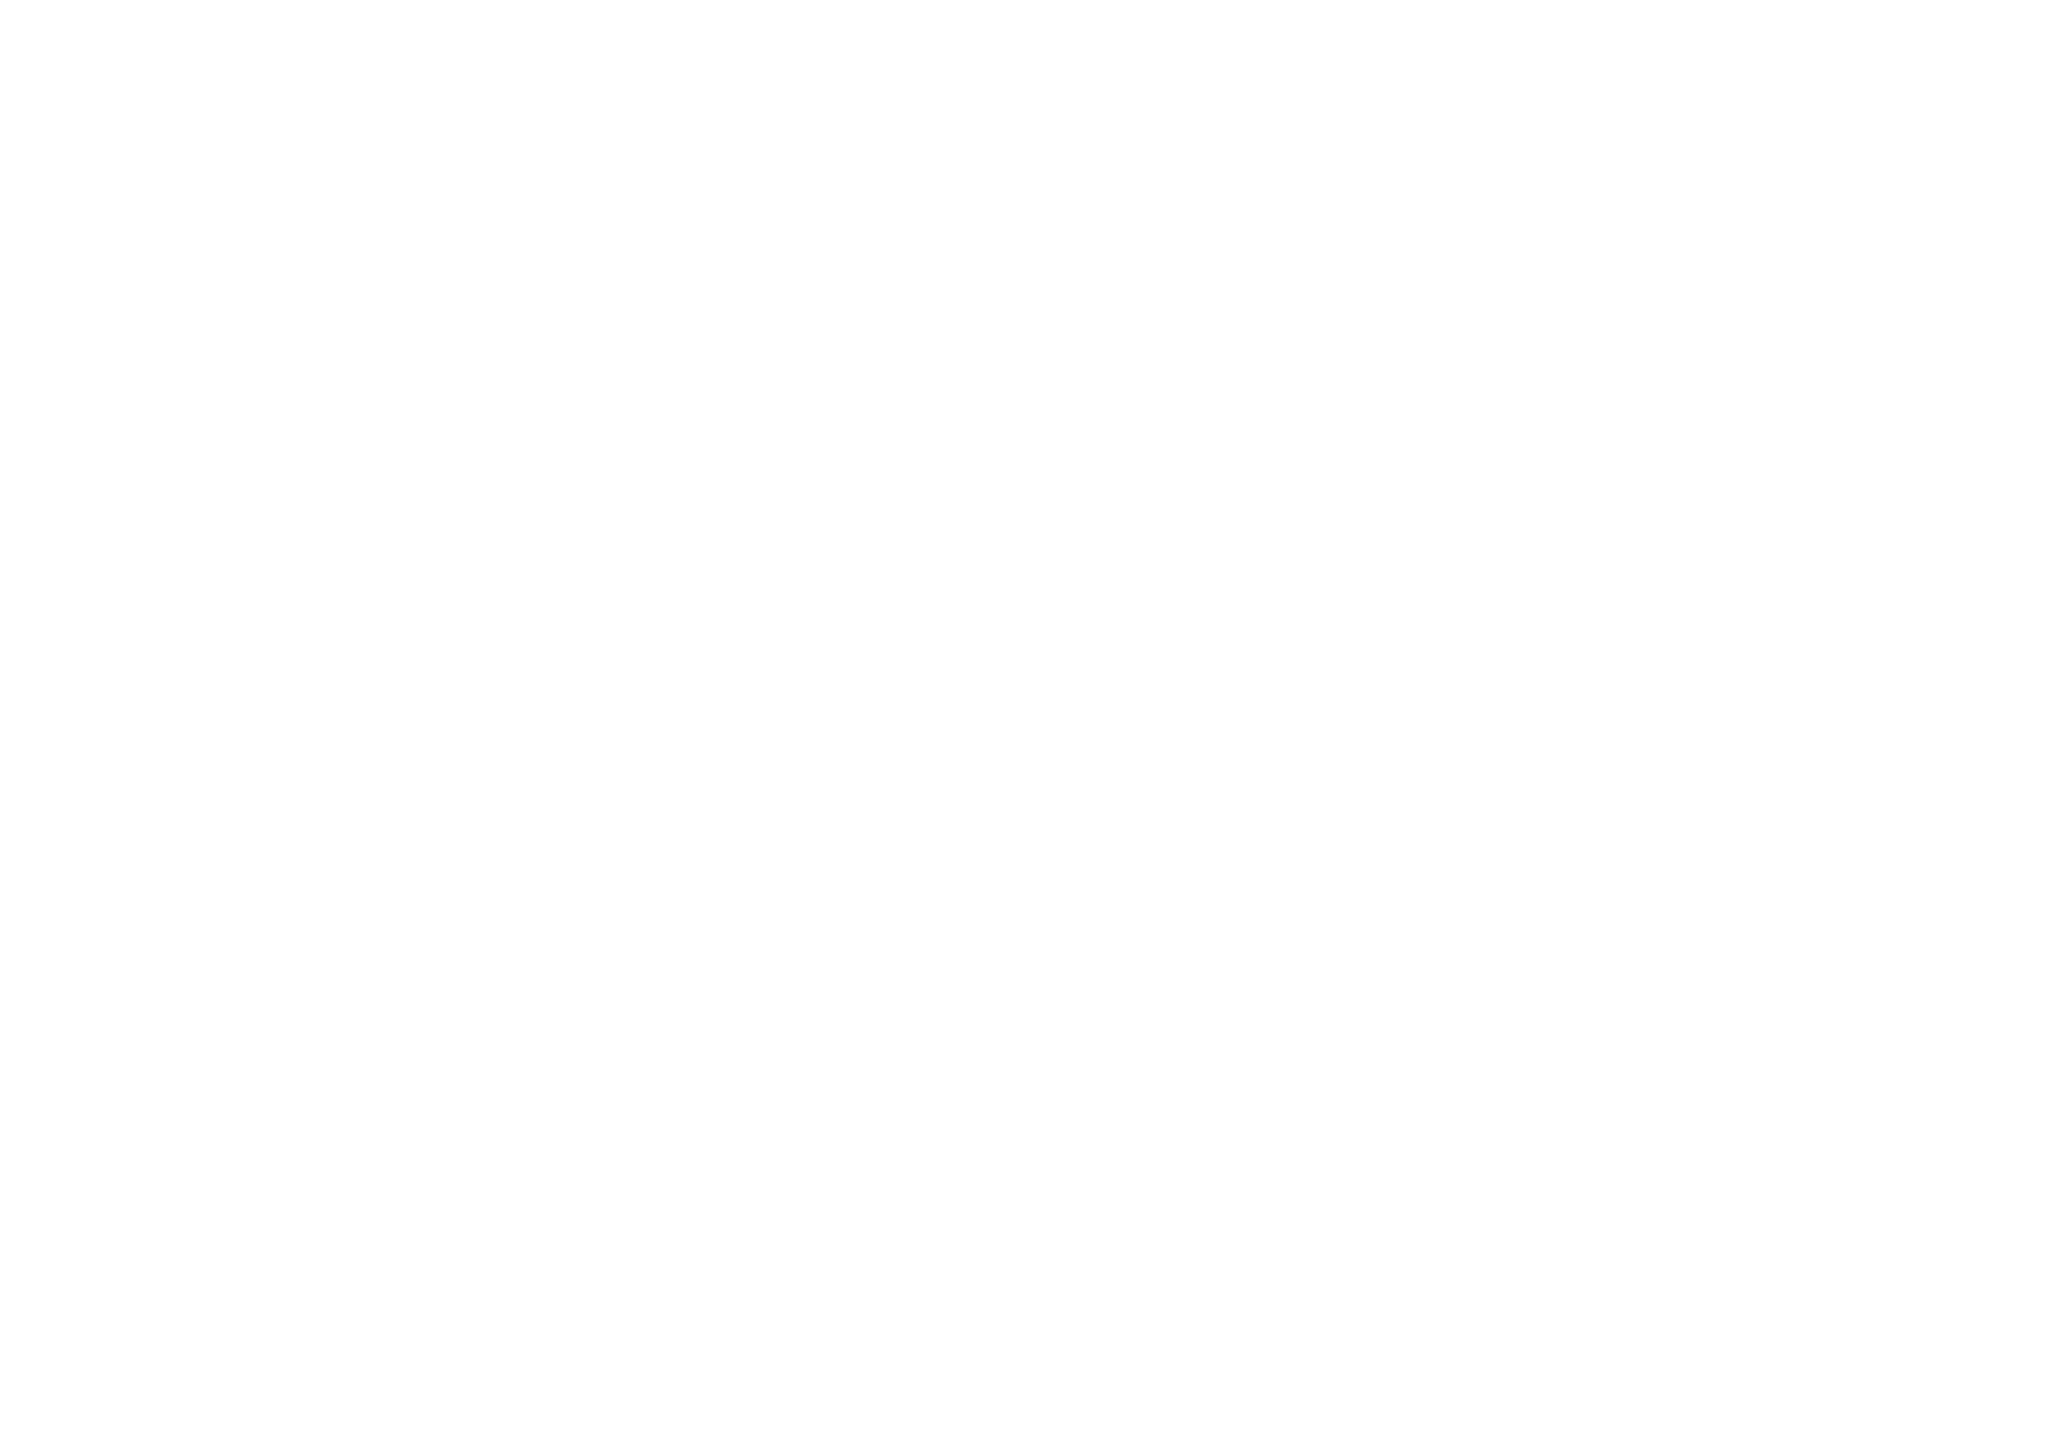 rescue_day_logo.png